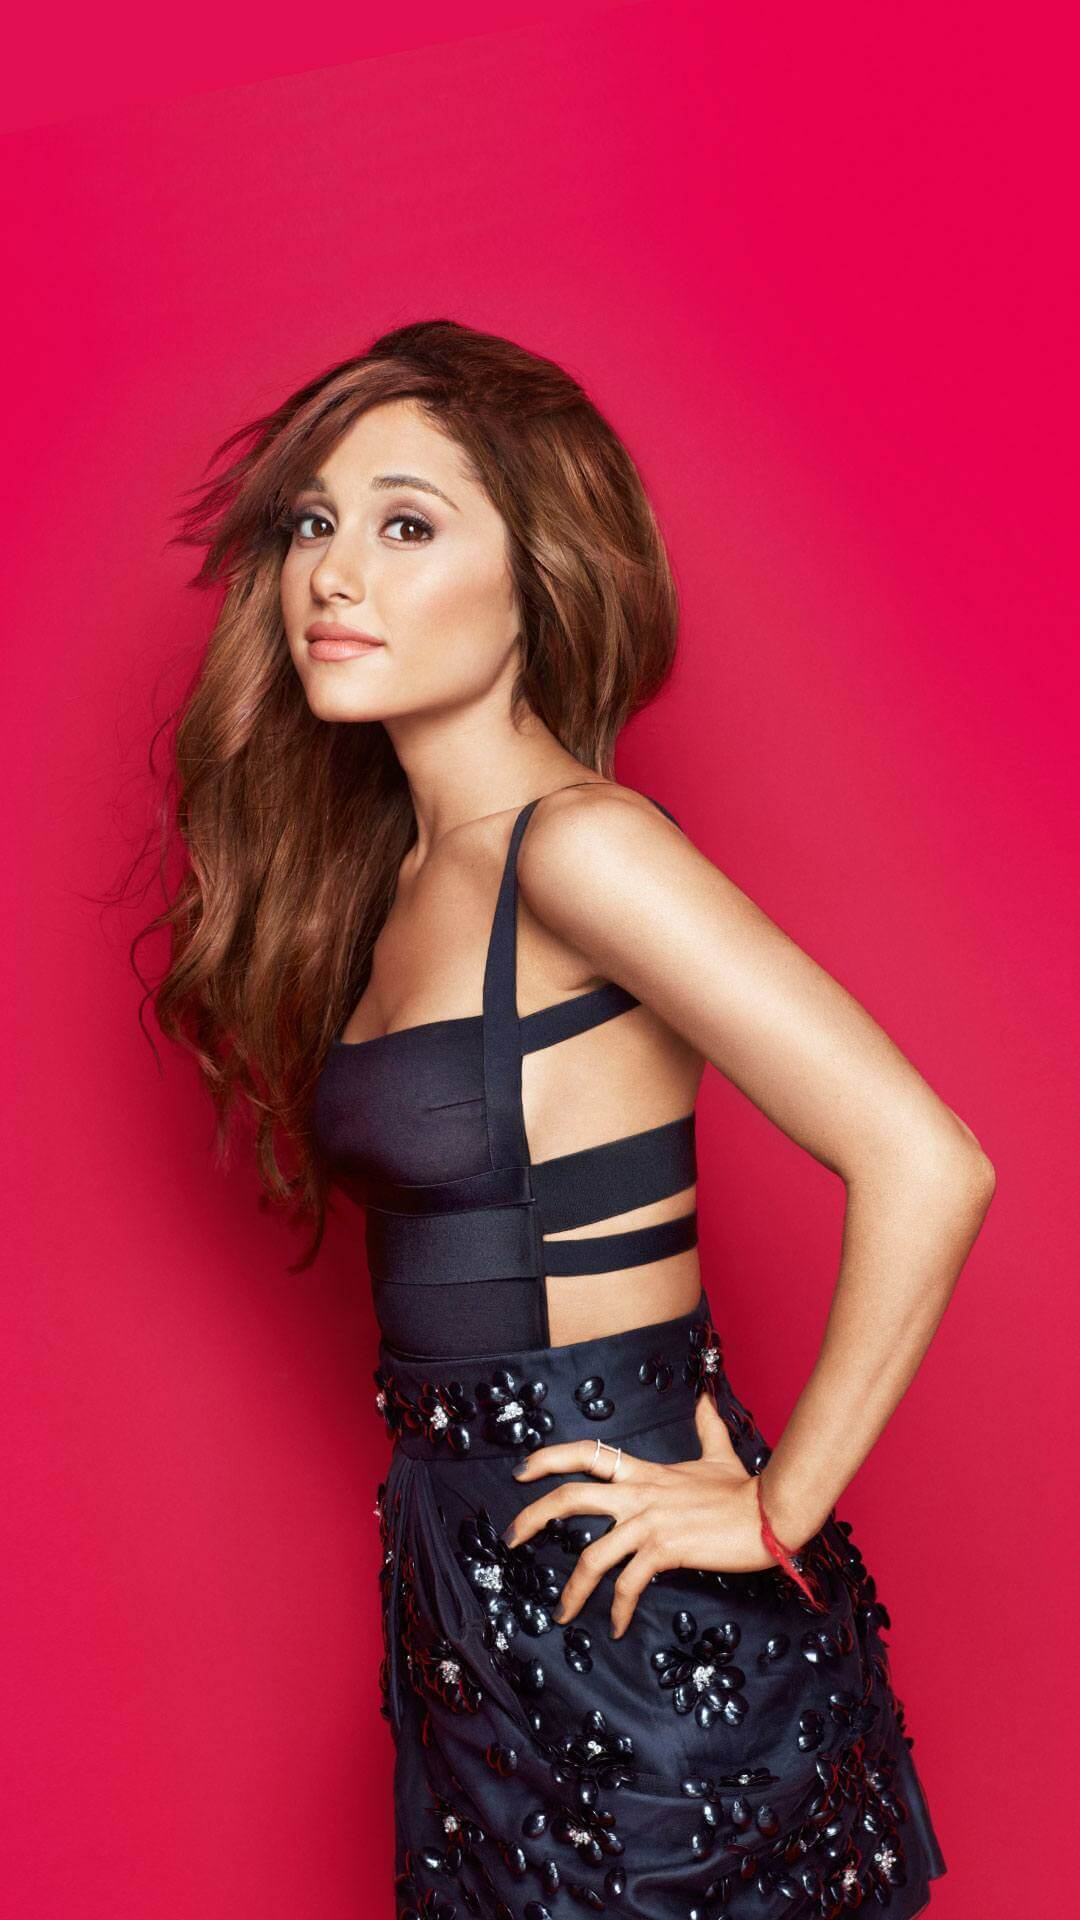 1080x1920 Ariana Grande Wallpapers for Desktop, Mobile and iPhone – Chic Wallpaper